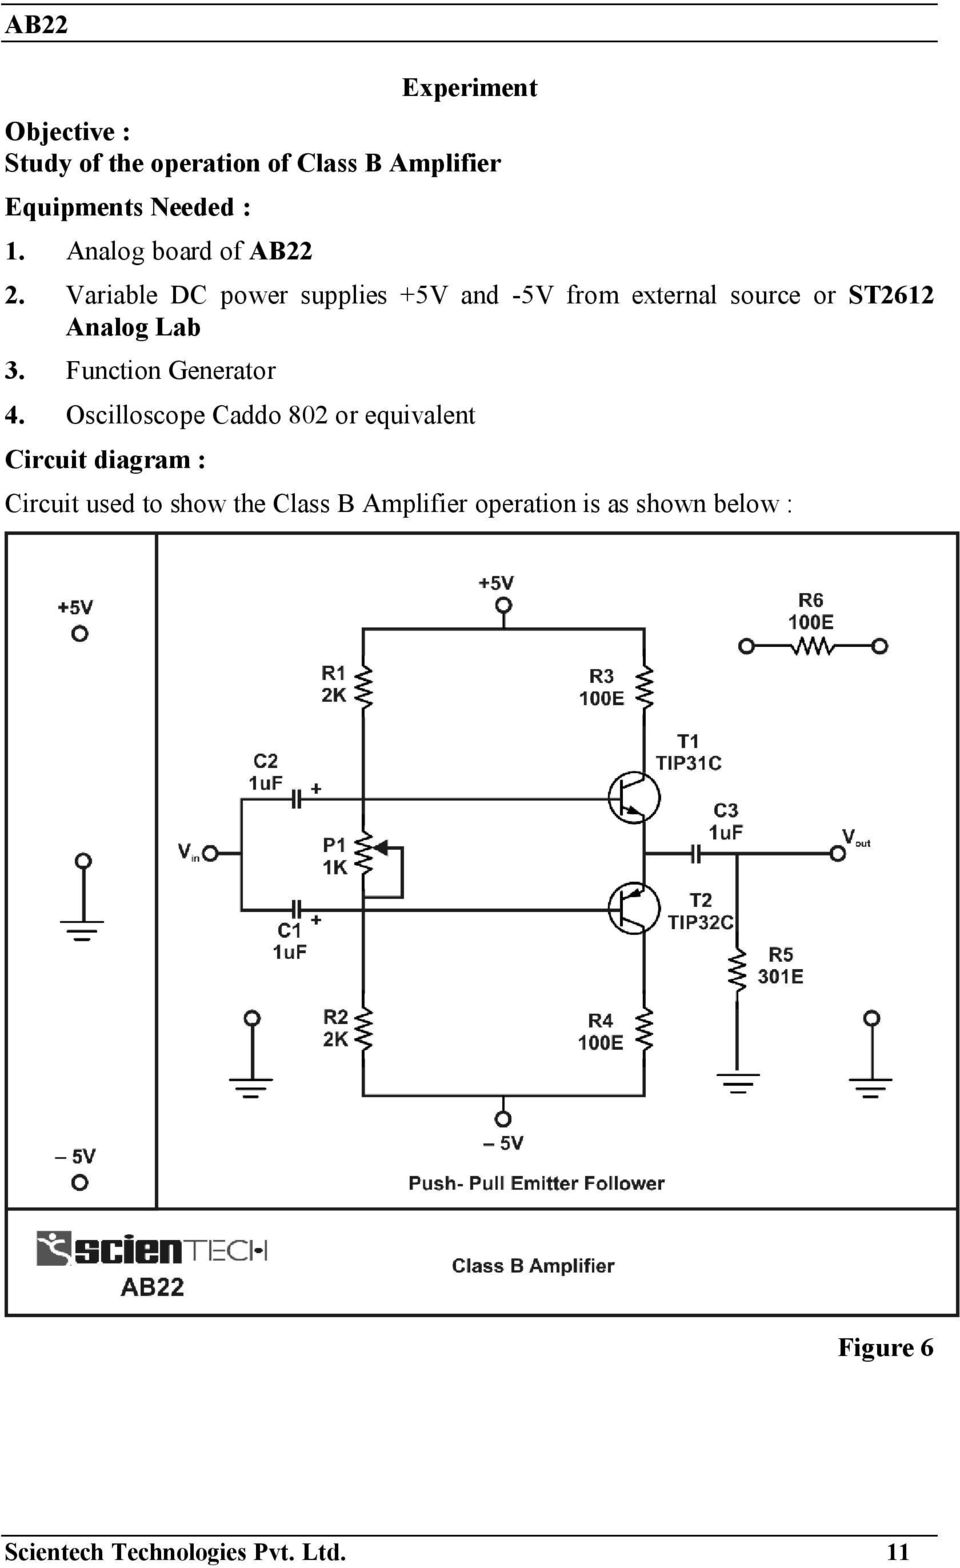 Operating Manual Ver Pdf Function Generator Circuit Diagram Pictures Variable Dc Power Supplies 5v And From External Source Or St2612 Analog Lab